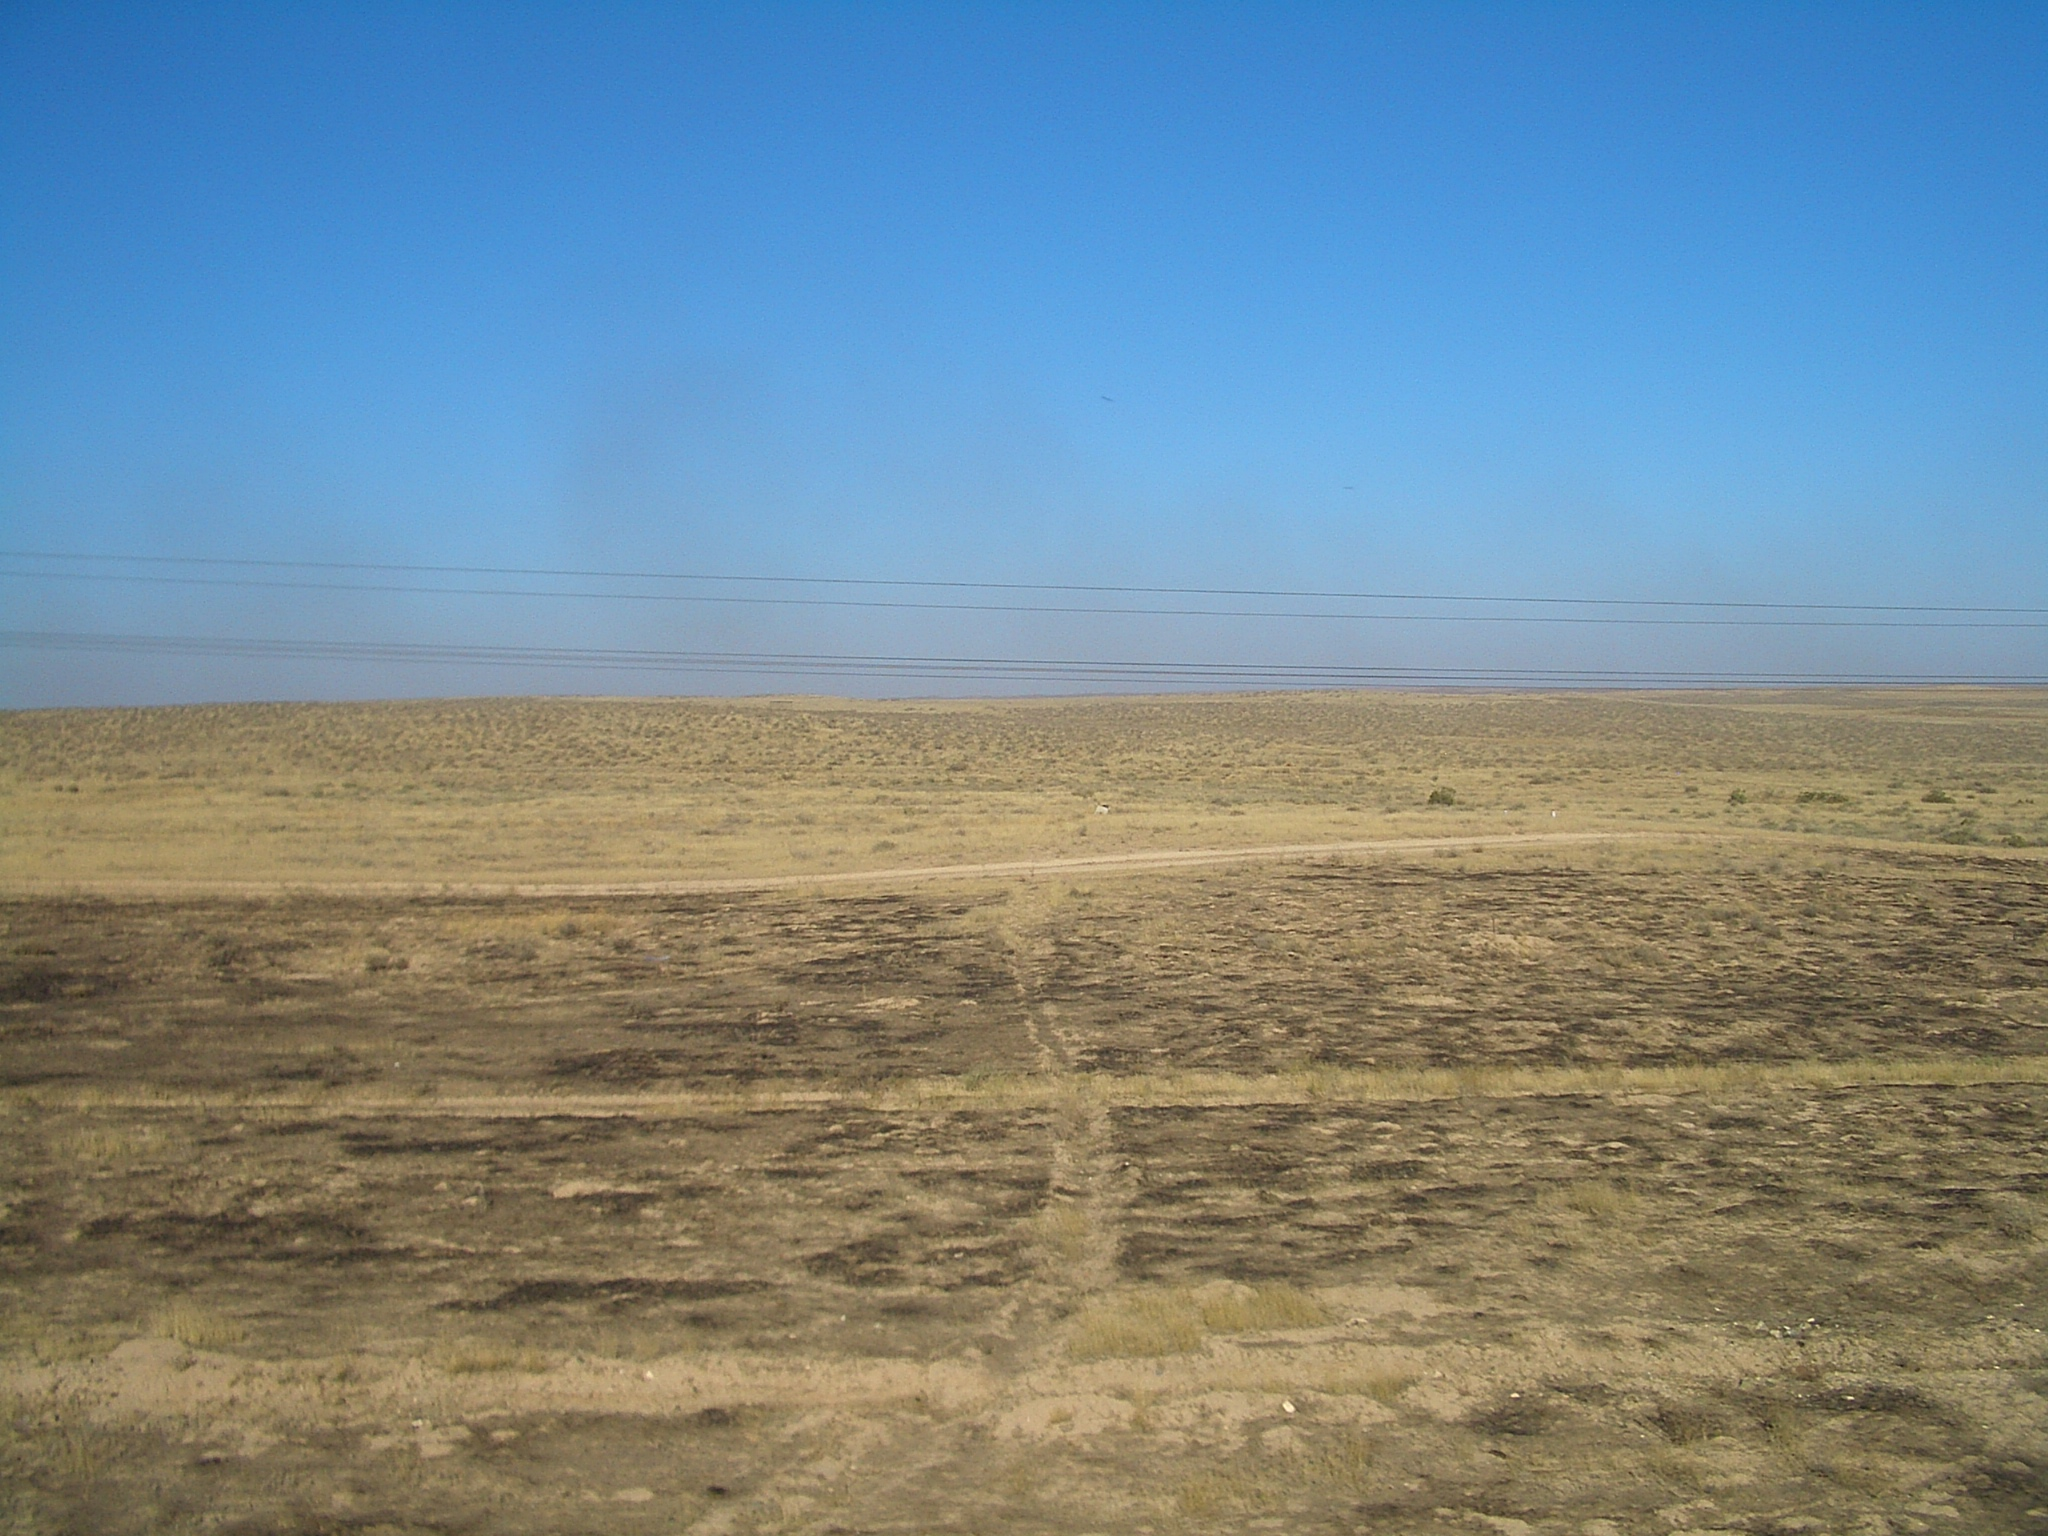 Central Asia Steppe